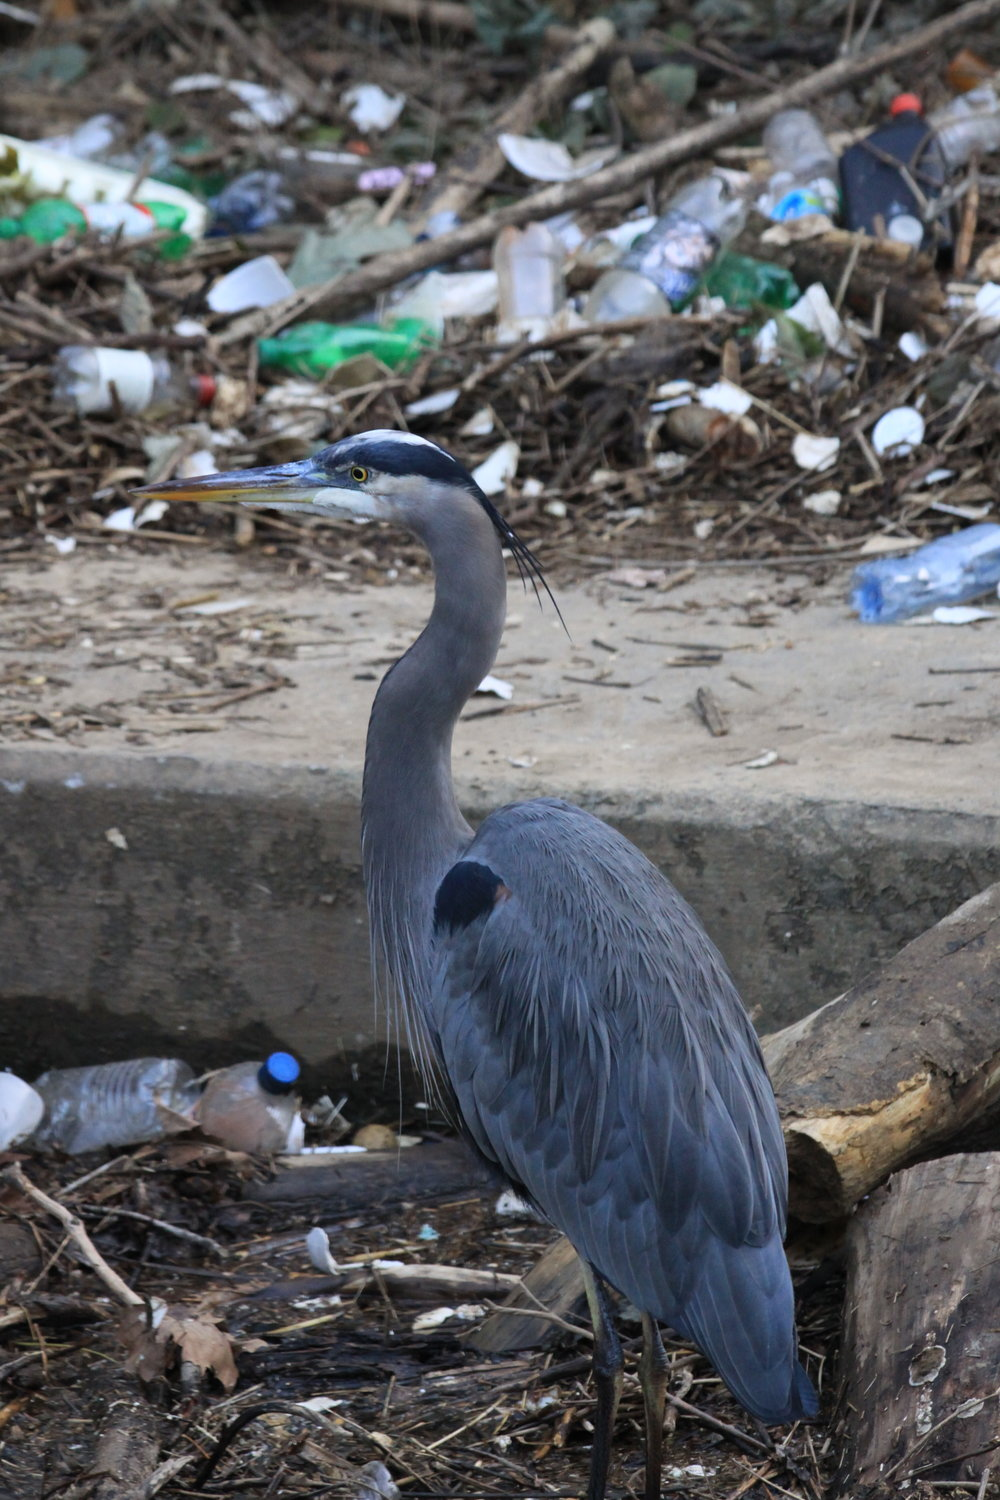 Great Blue Heron surrounded by trash. Photo by  Wyoming_Jackrabbit  via flickr.